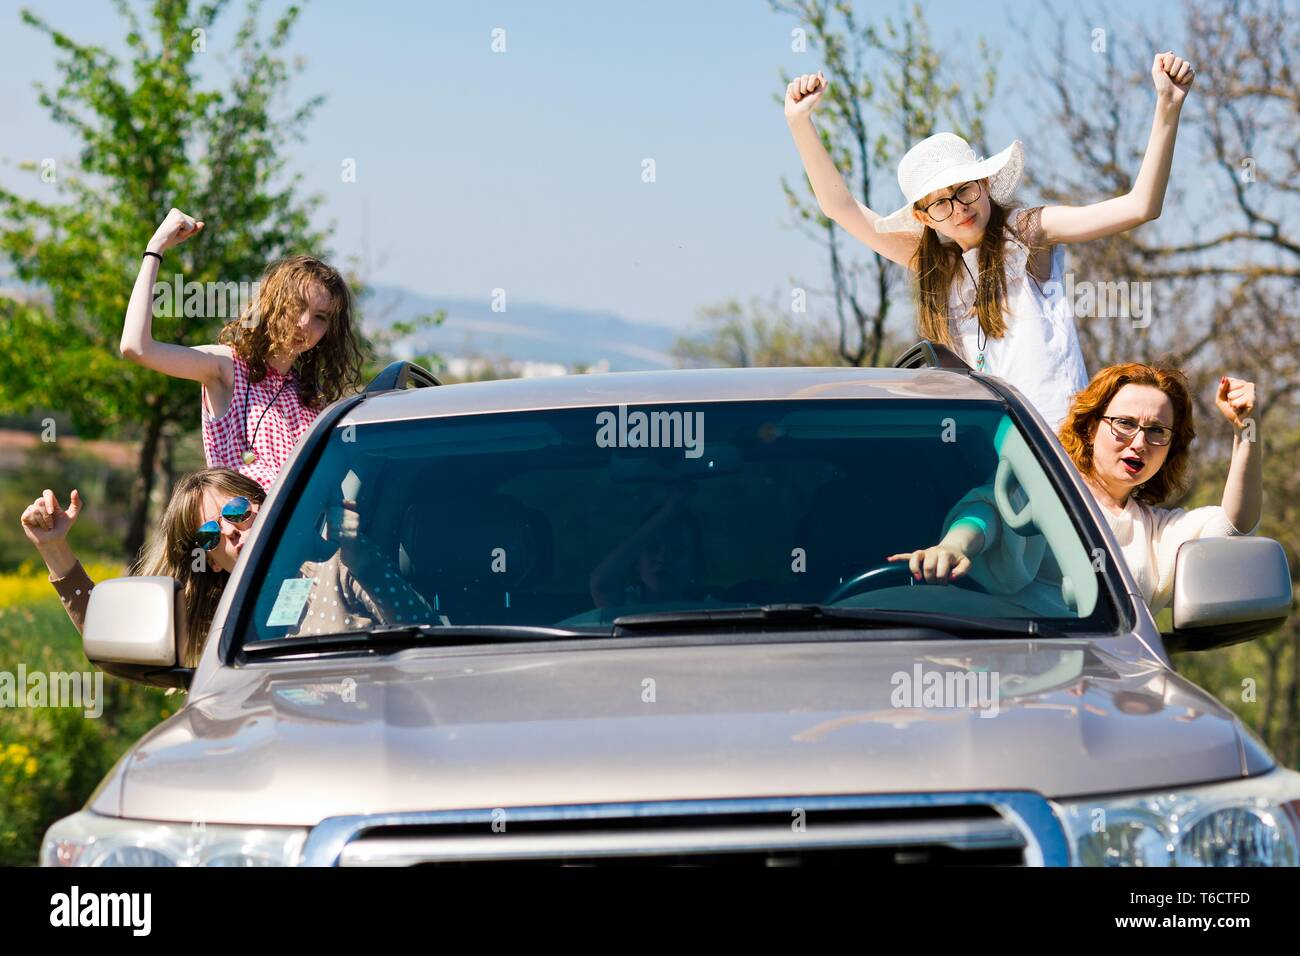 Rioters behind the wheel, female hooligans in the car showing gestures from windows Stock Photo